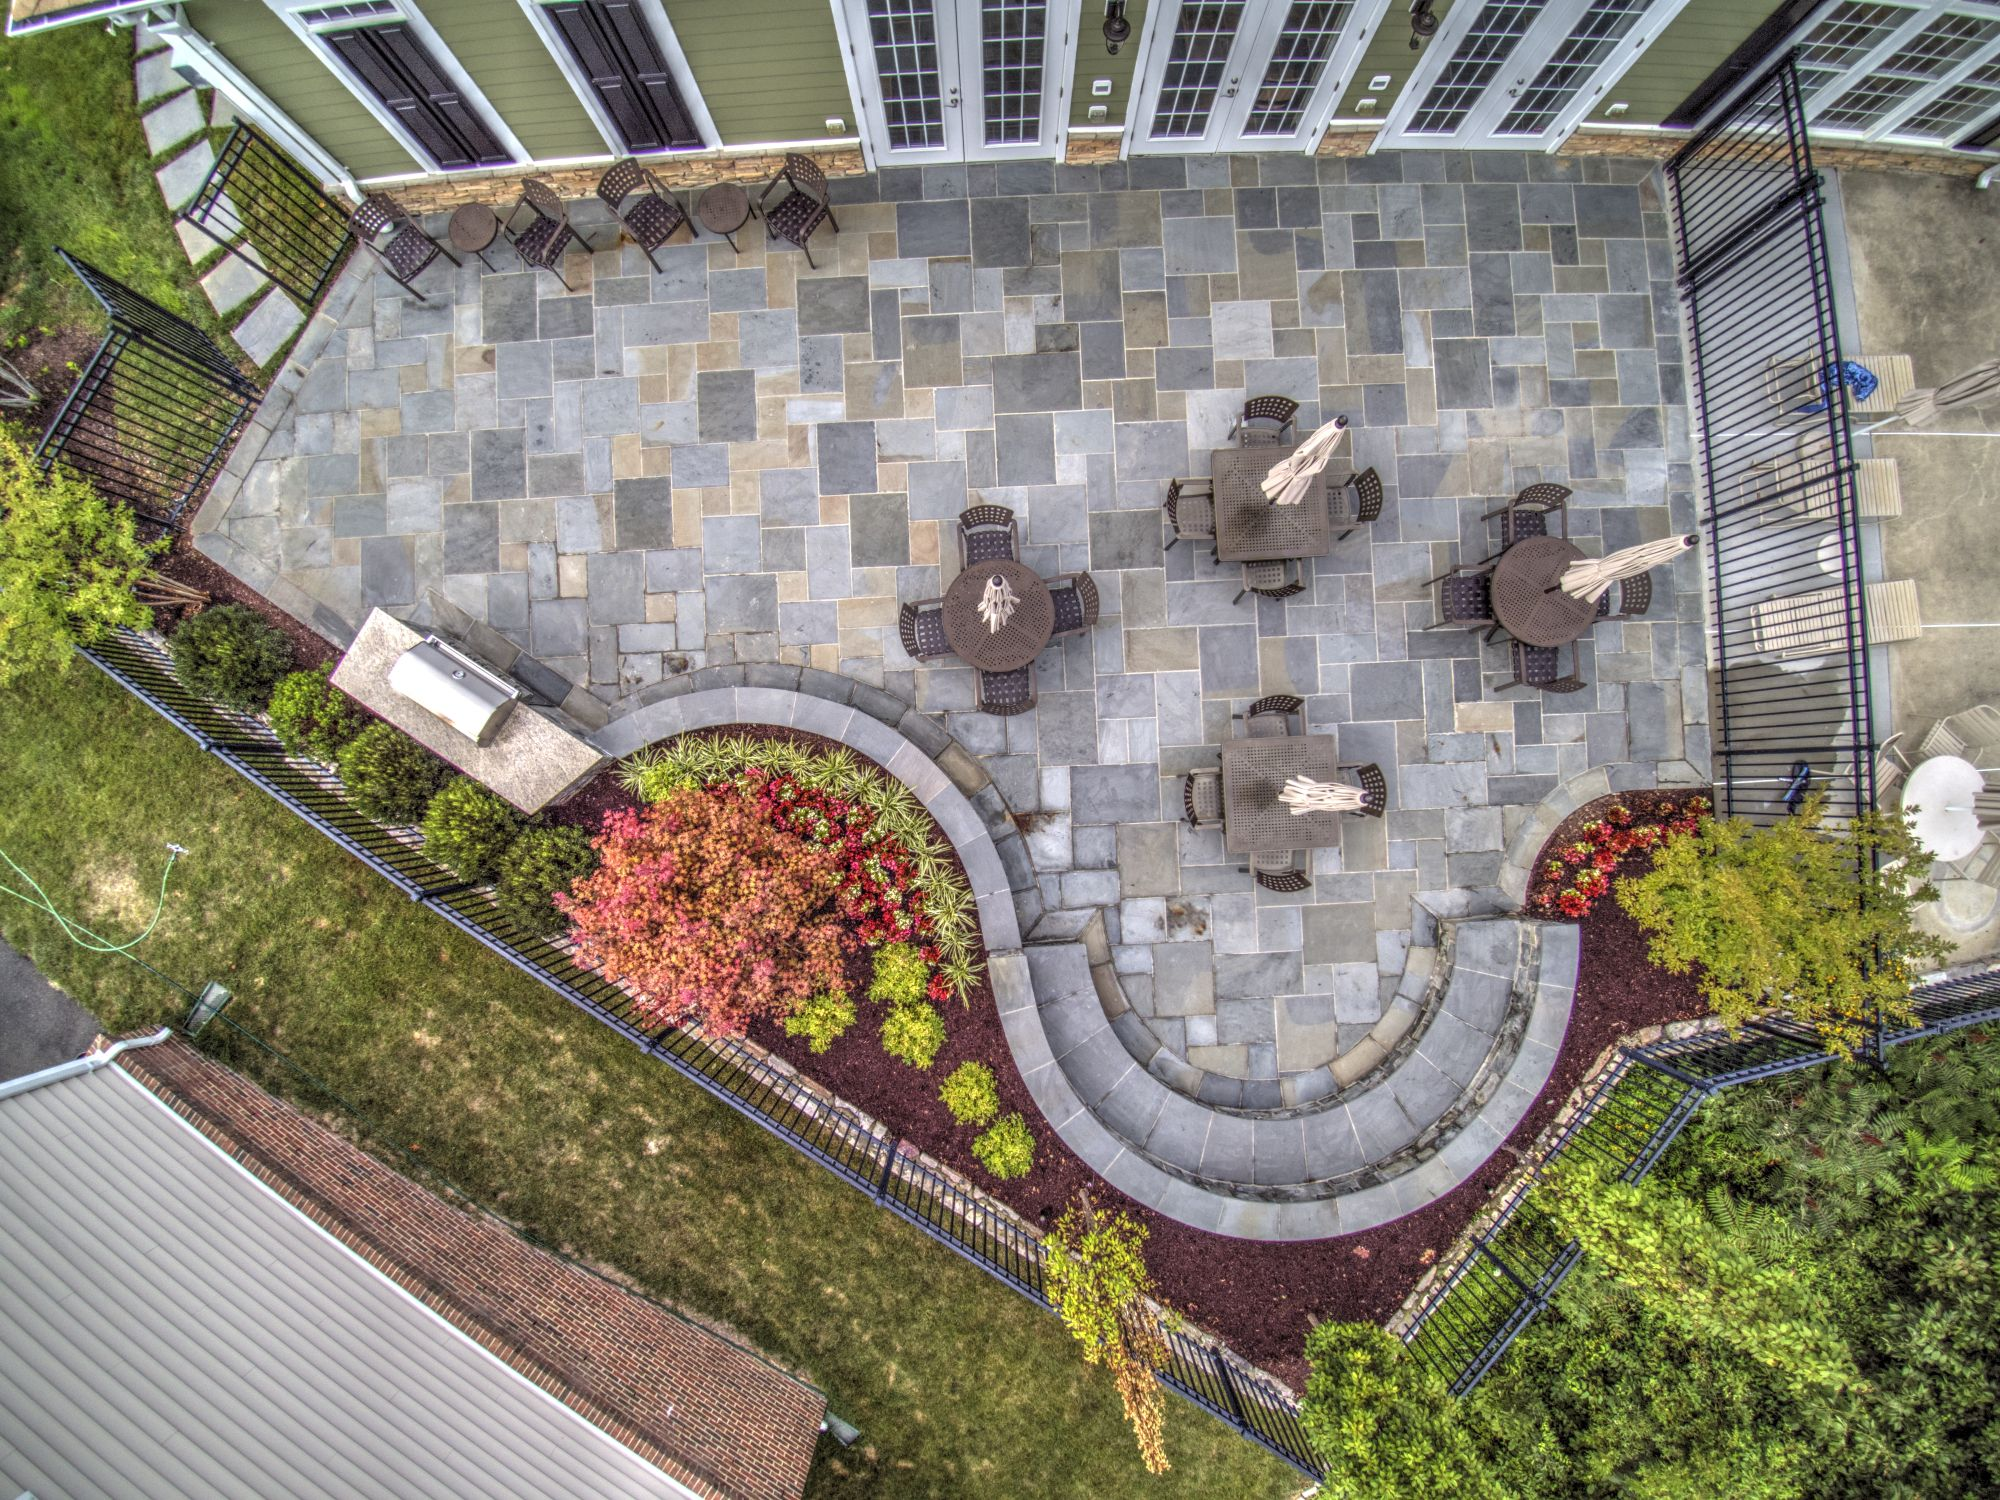 Pavers or Natural Stone? Which is Best for a Patio in Ashburn, Aldie or Leesburg, VA?